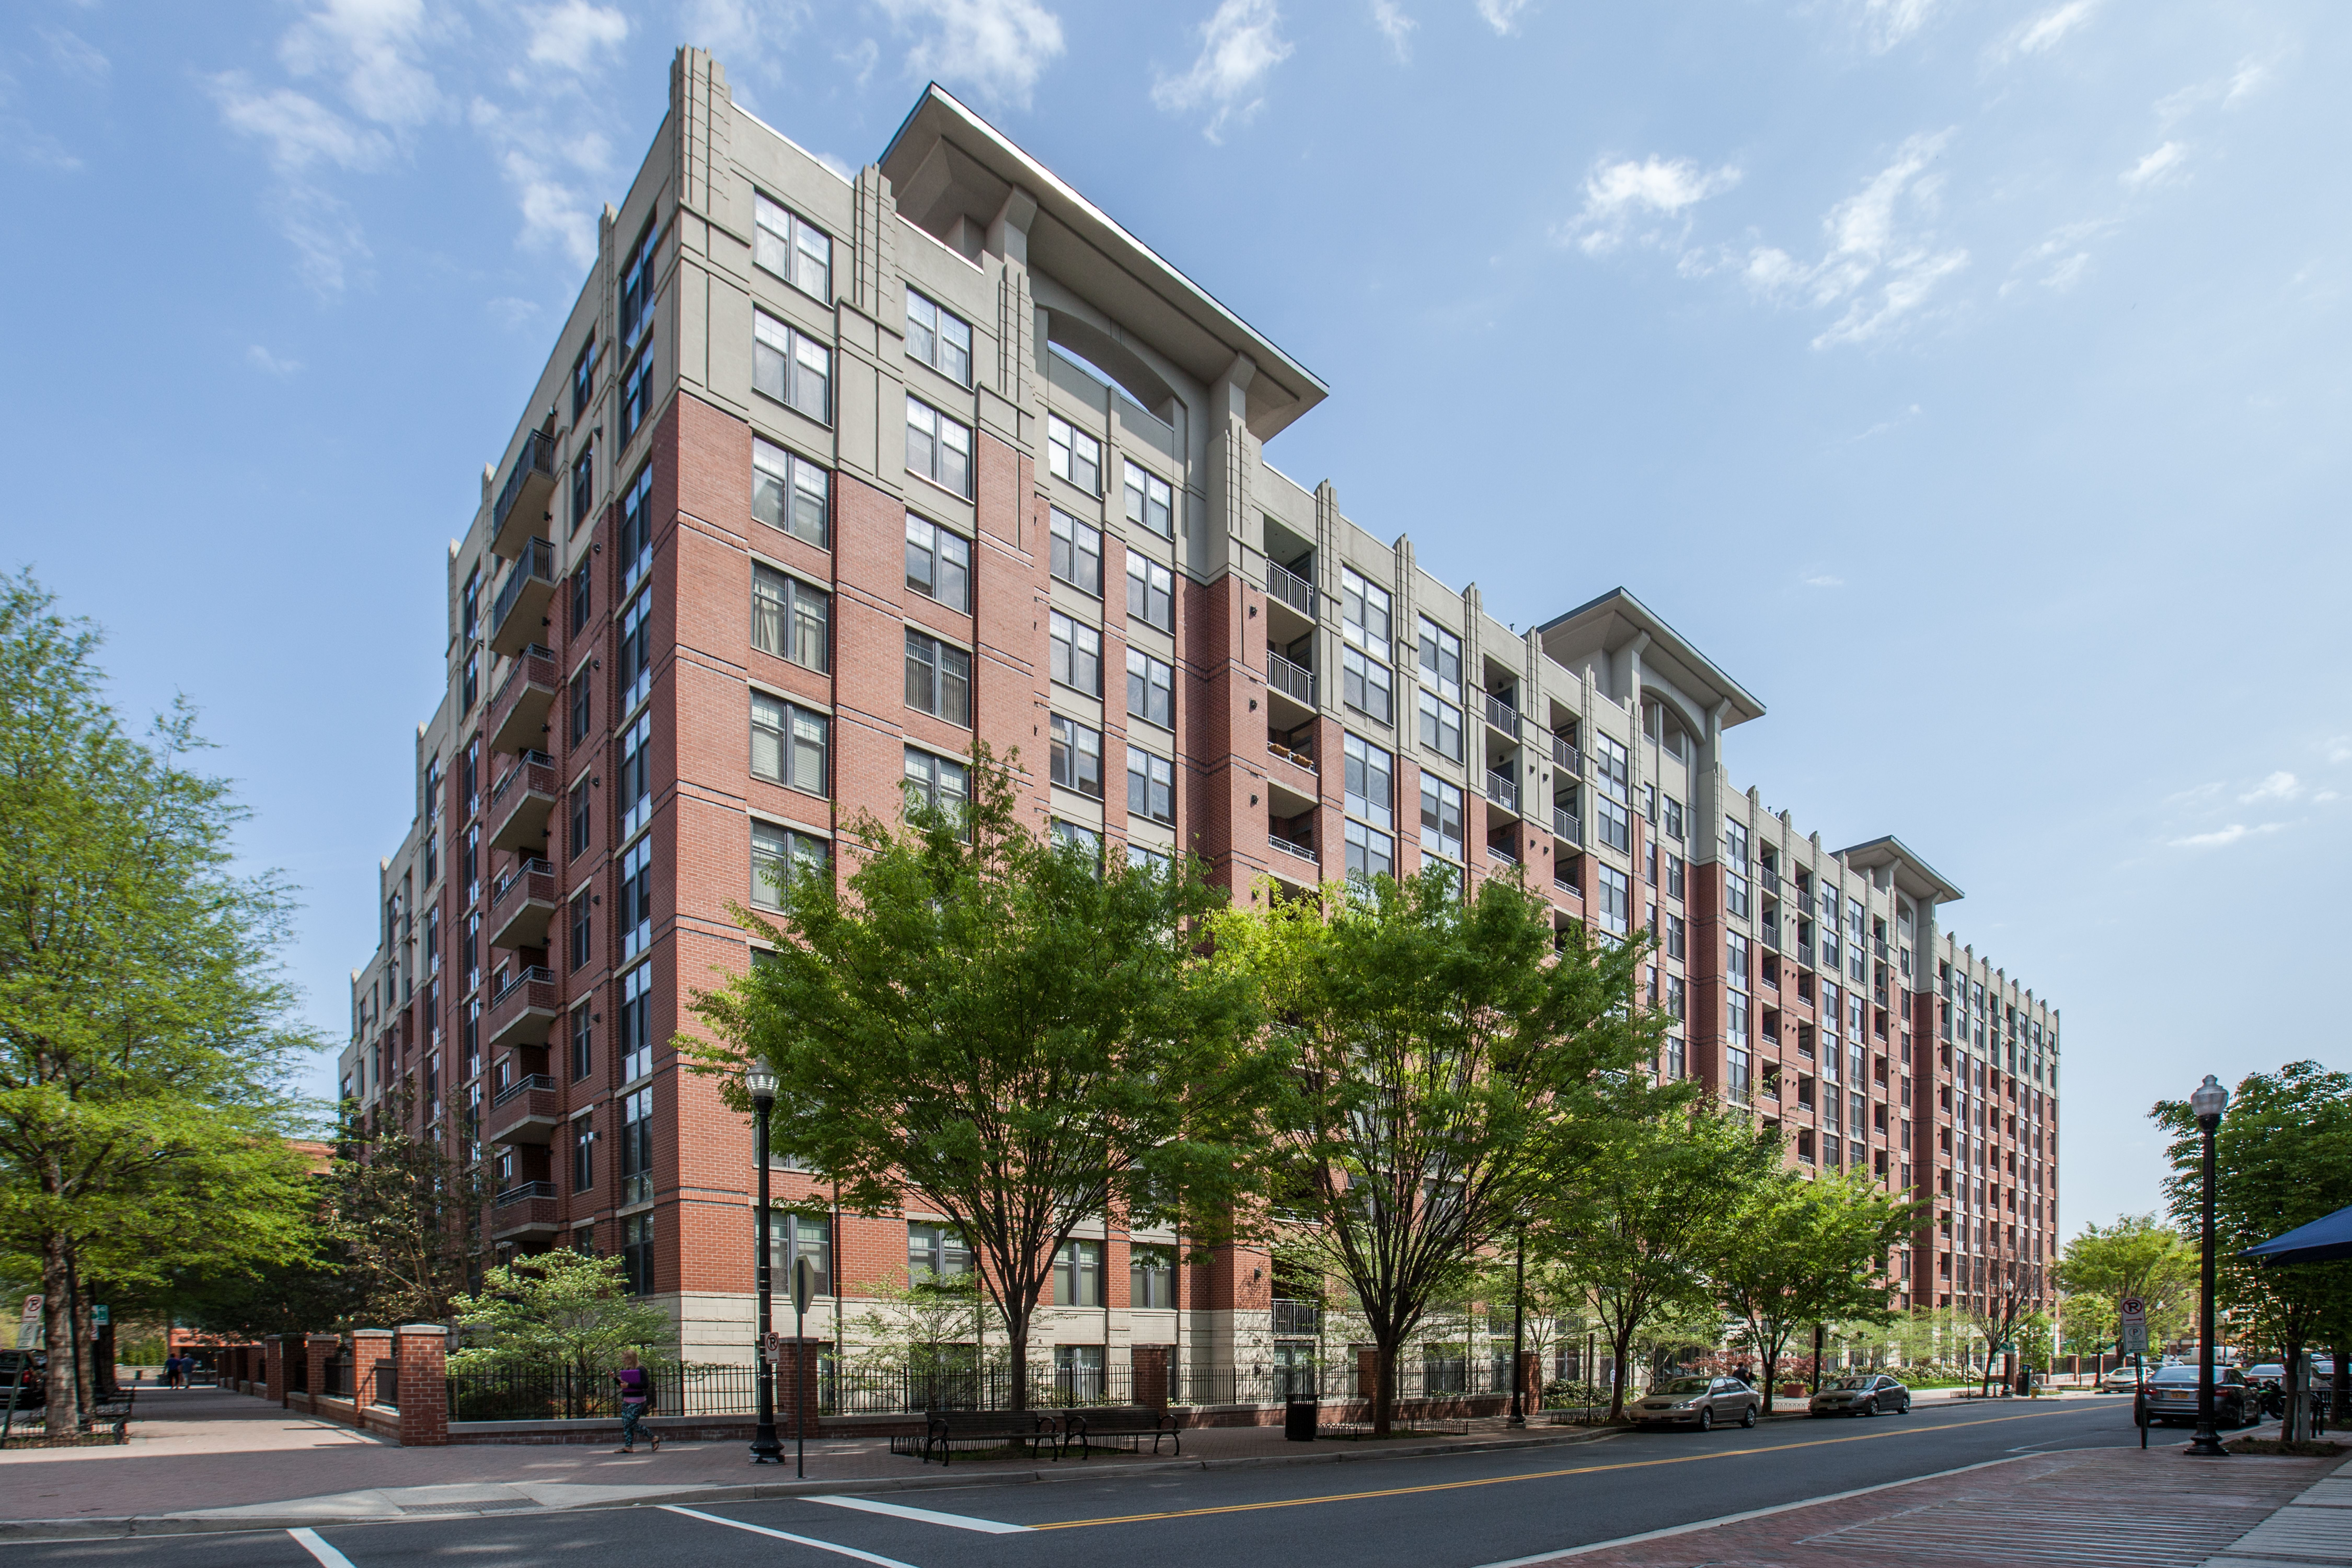 NEW LISTING: Bright, Spacious 1 BDR in Arlington